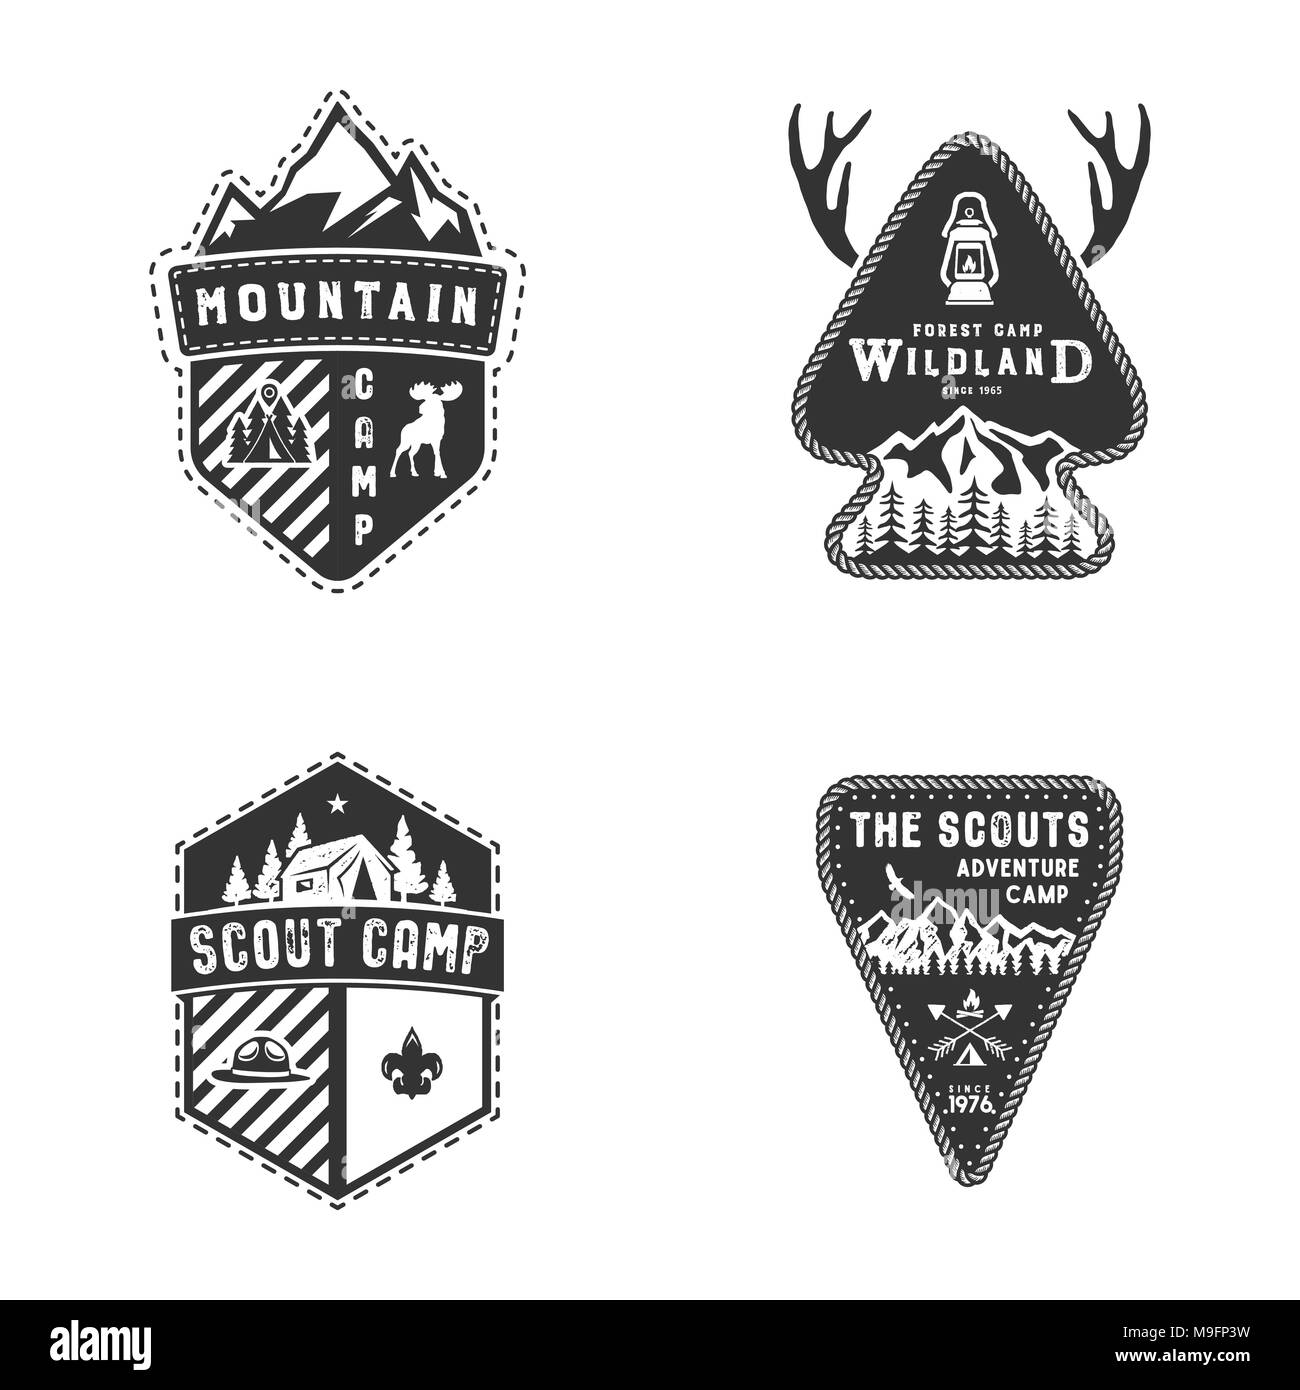 Travel badges, outdoor activity logo collection. Scout camps emblems. Vintage hand drawn travel badge design. Stock vector illustration, insignias, rustic patches. Isolated on white background - Stock Image